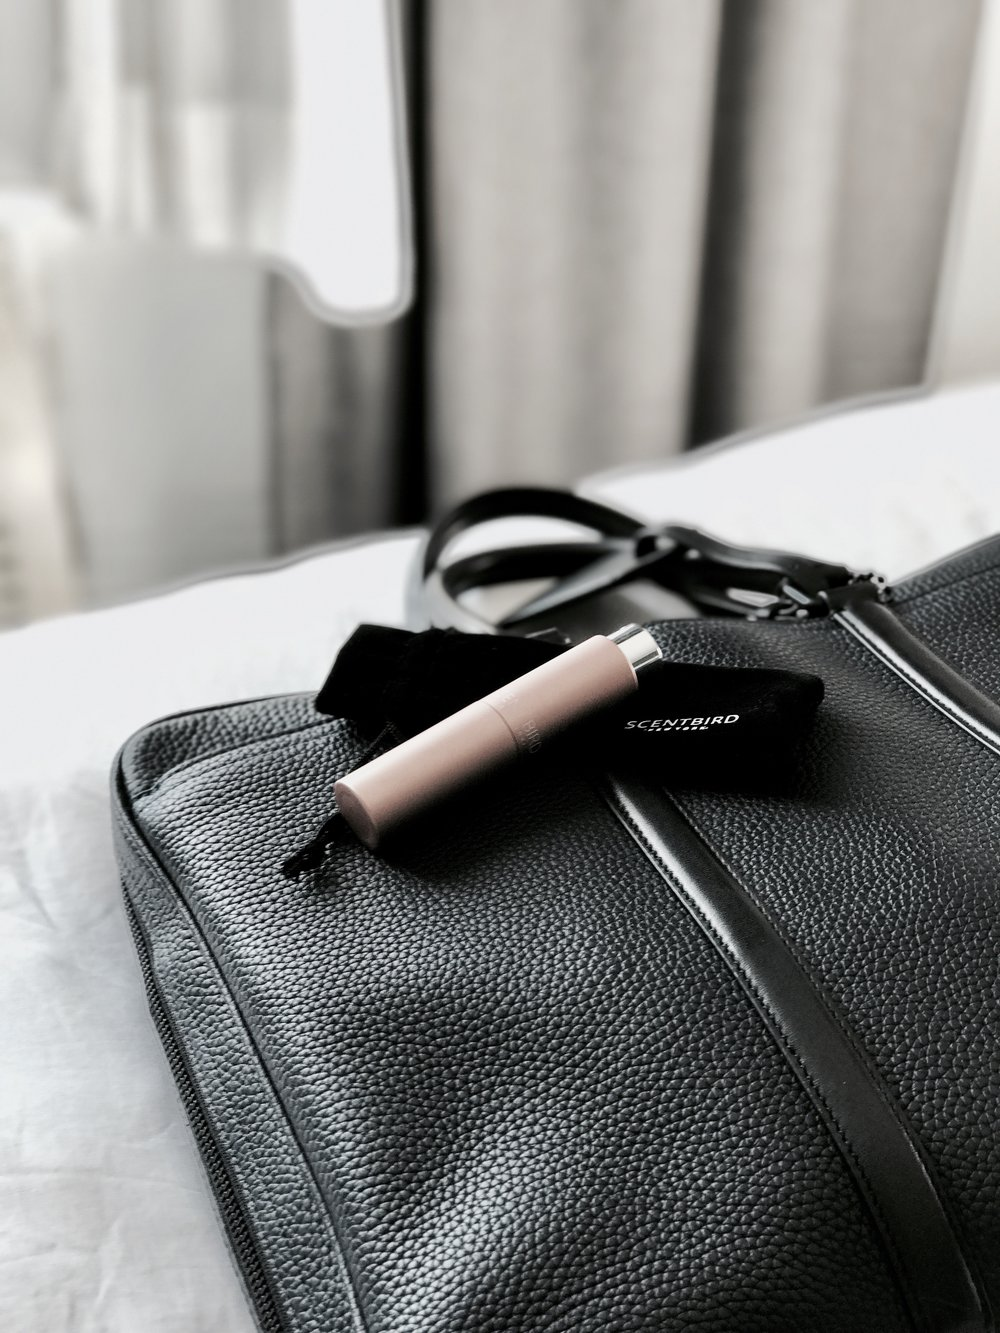 SCENTBIRD - THE NEW DESIGNER FRAGRANCE SUBSCRIPTION